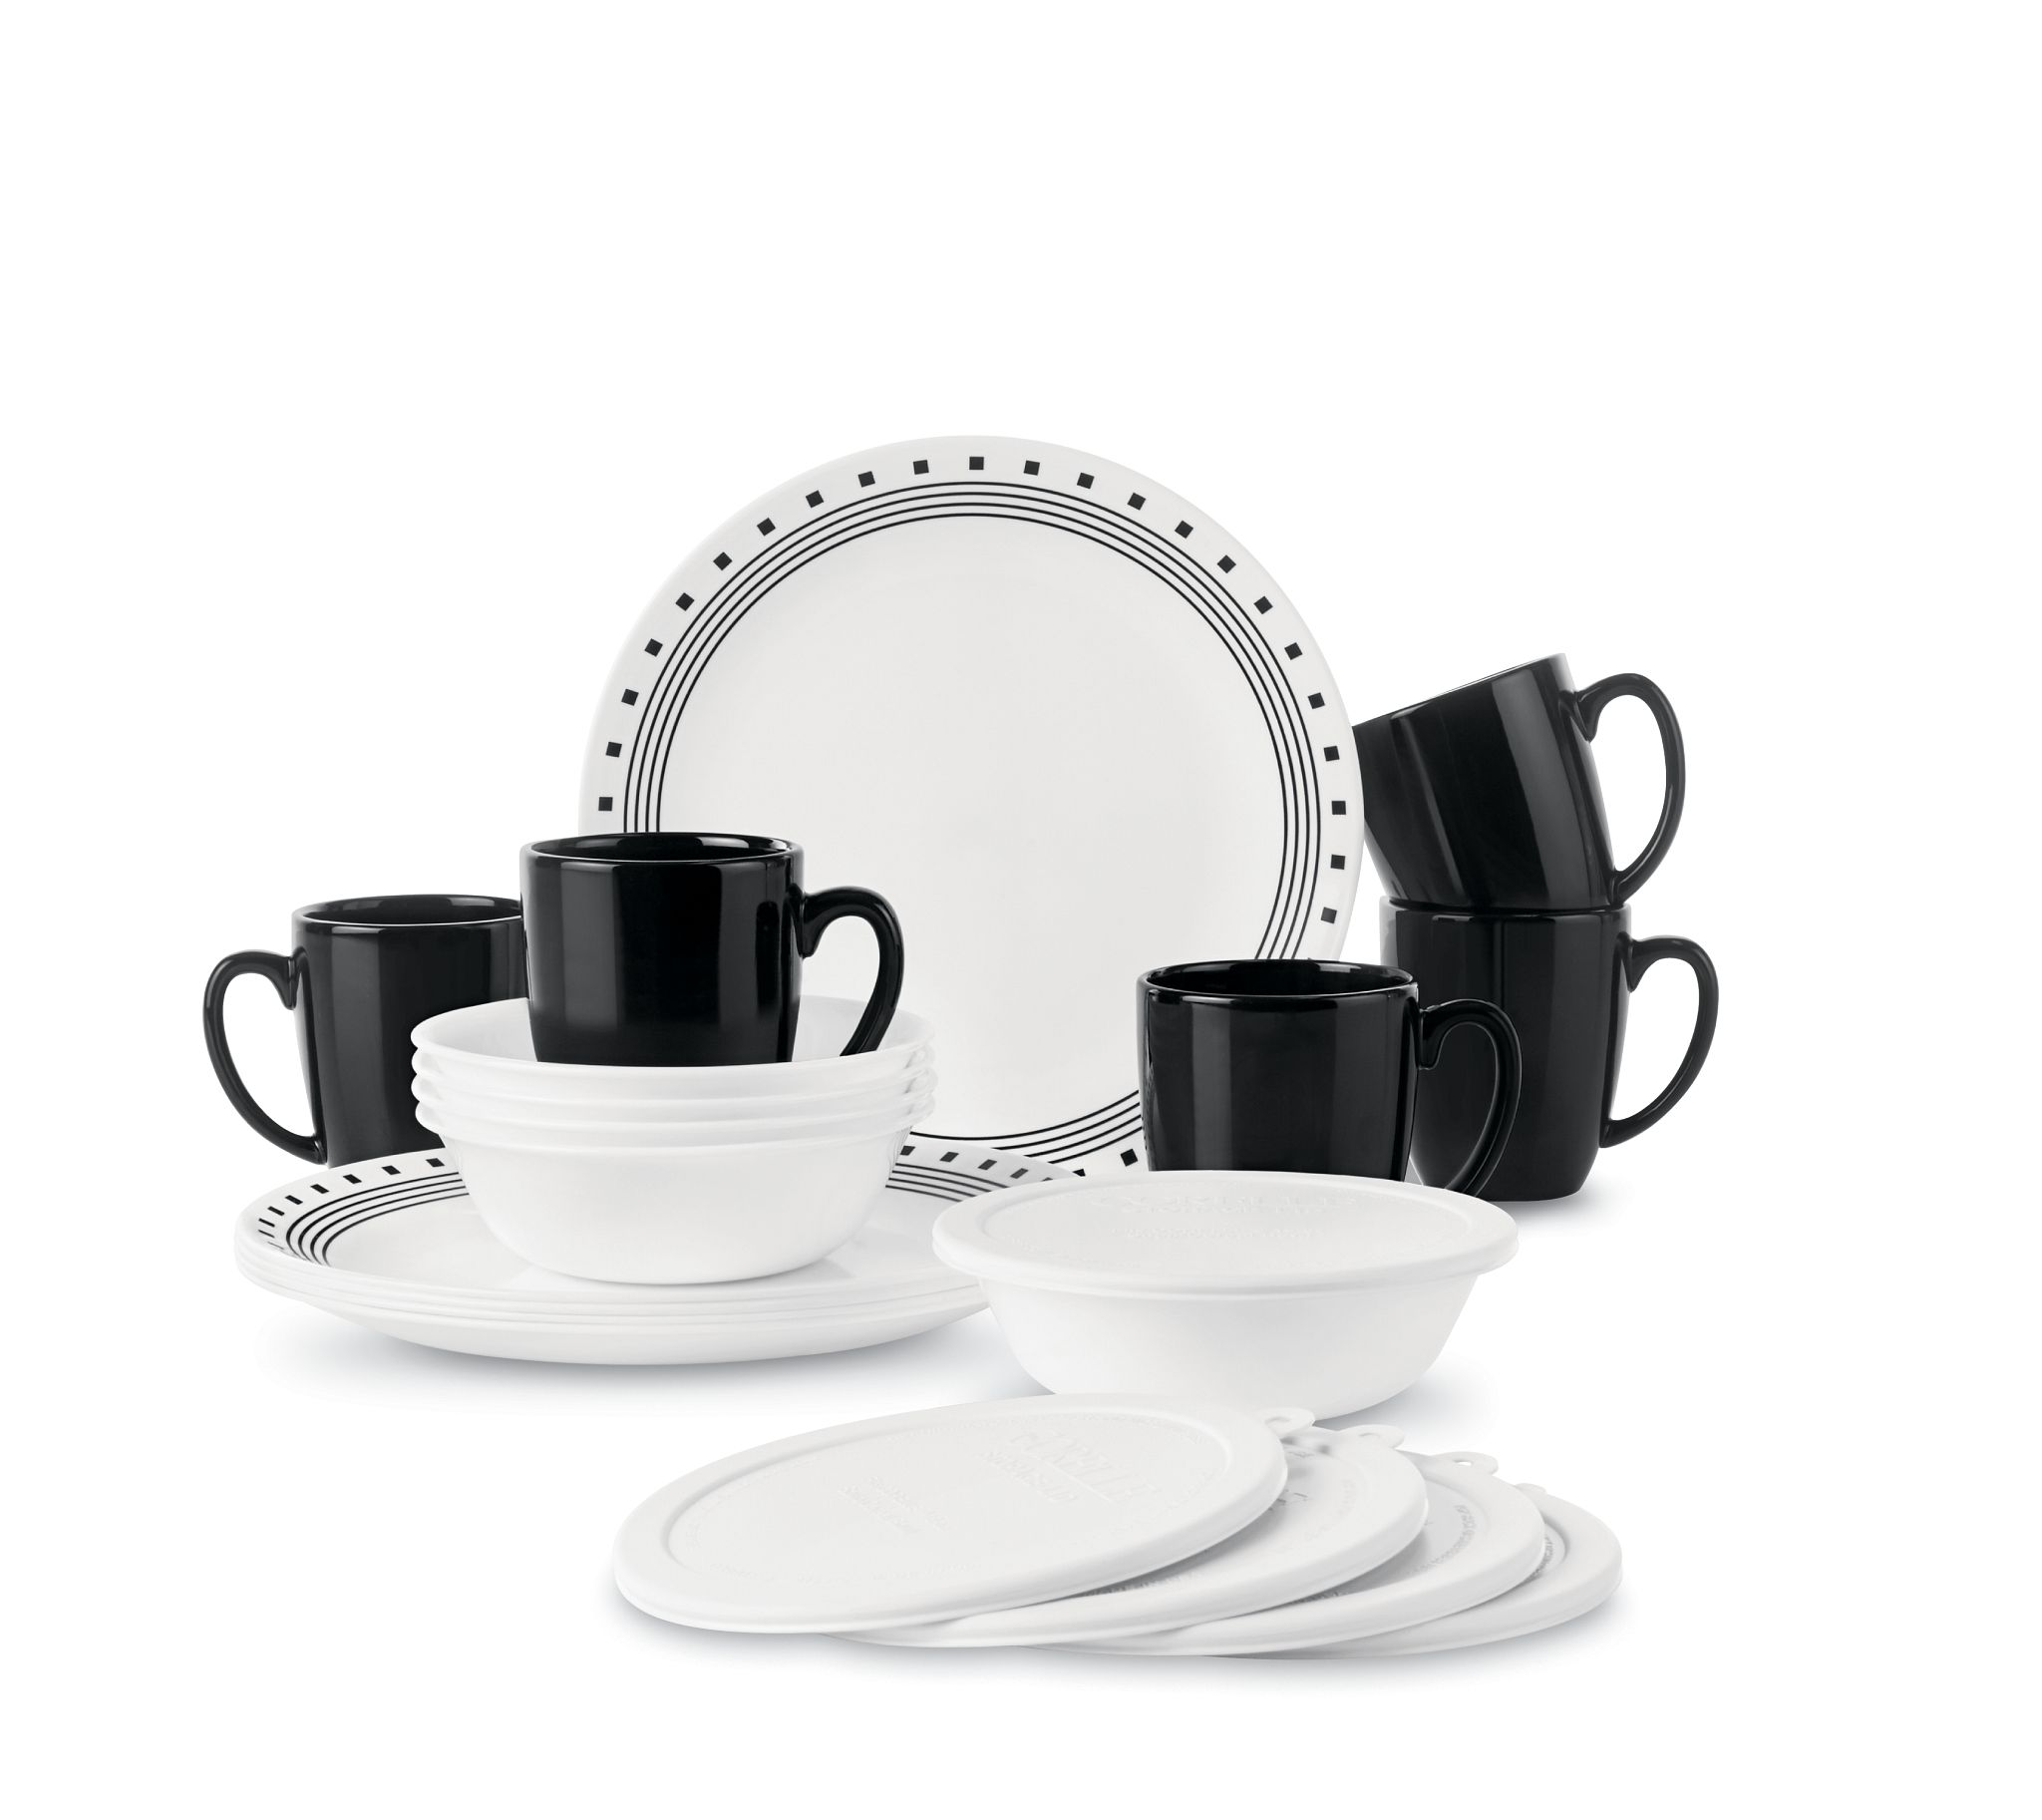 City Block 16-pc Dinnerware Set with Lids, Service for 4